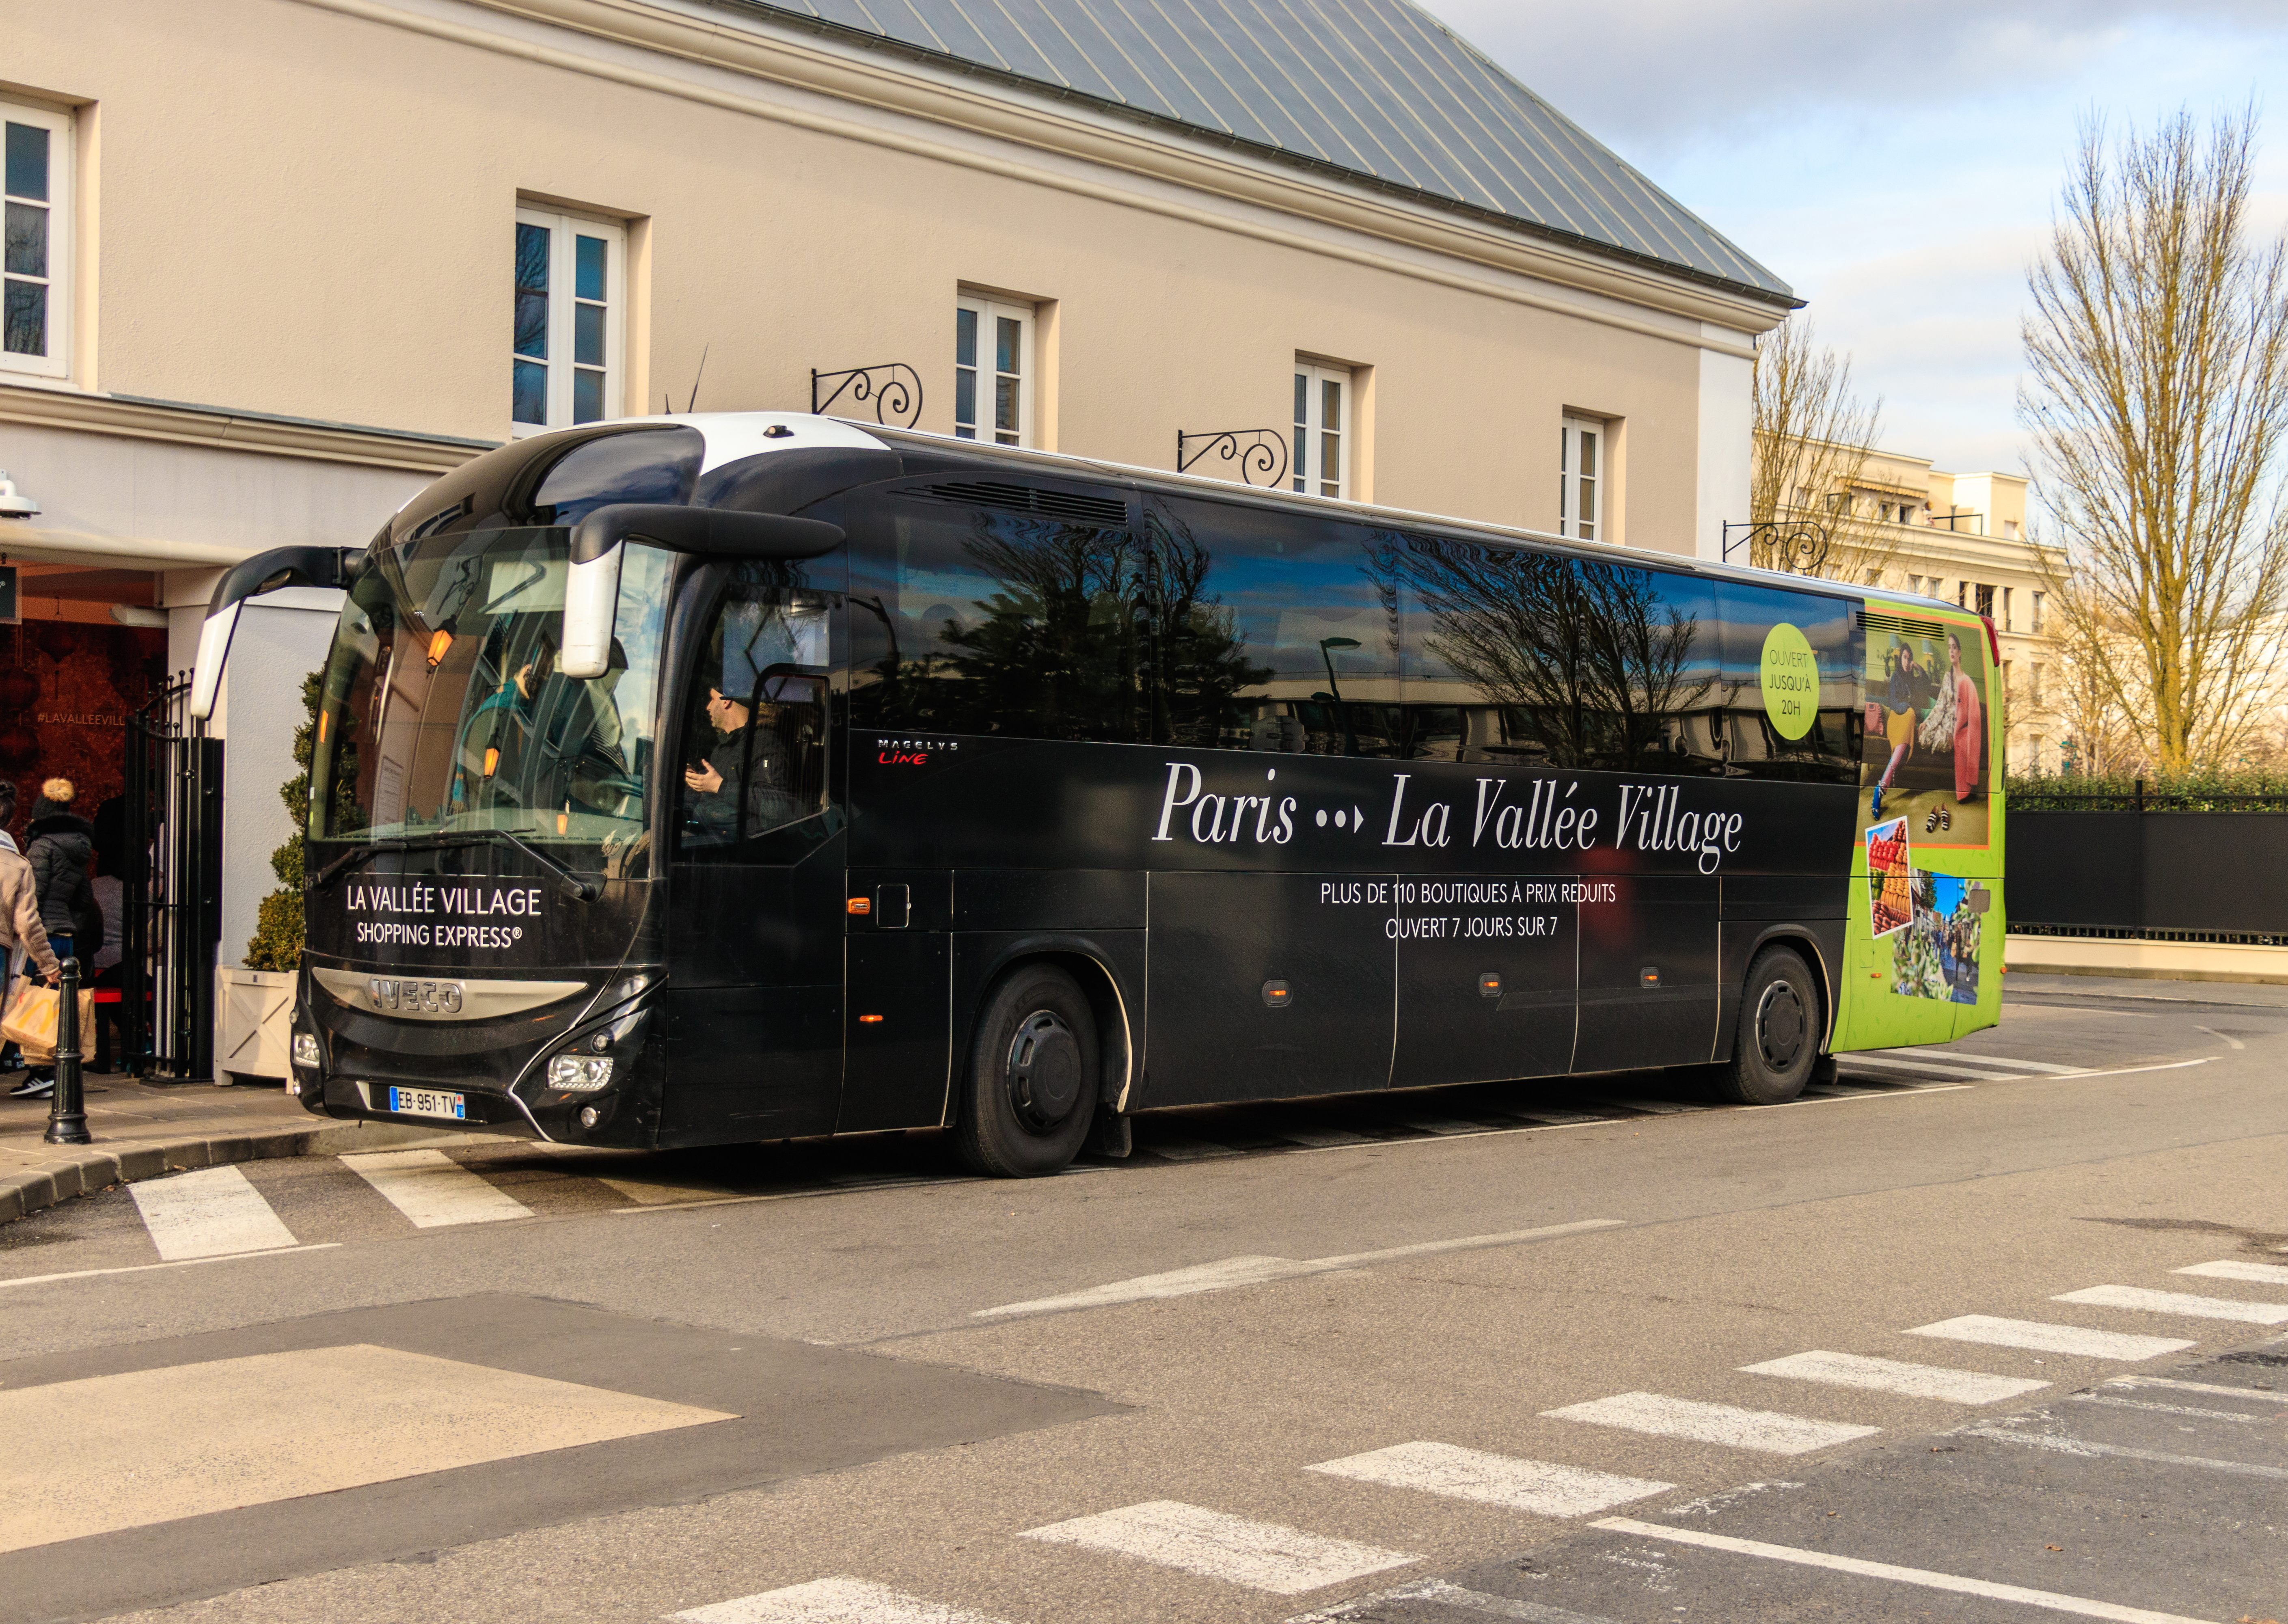 Free shuttle bus for LA VALLEE VILLAGE